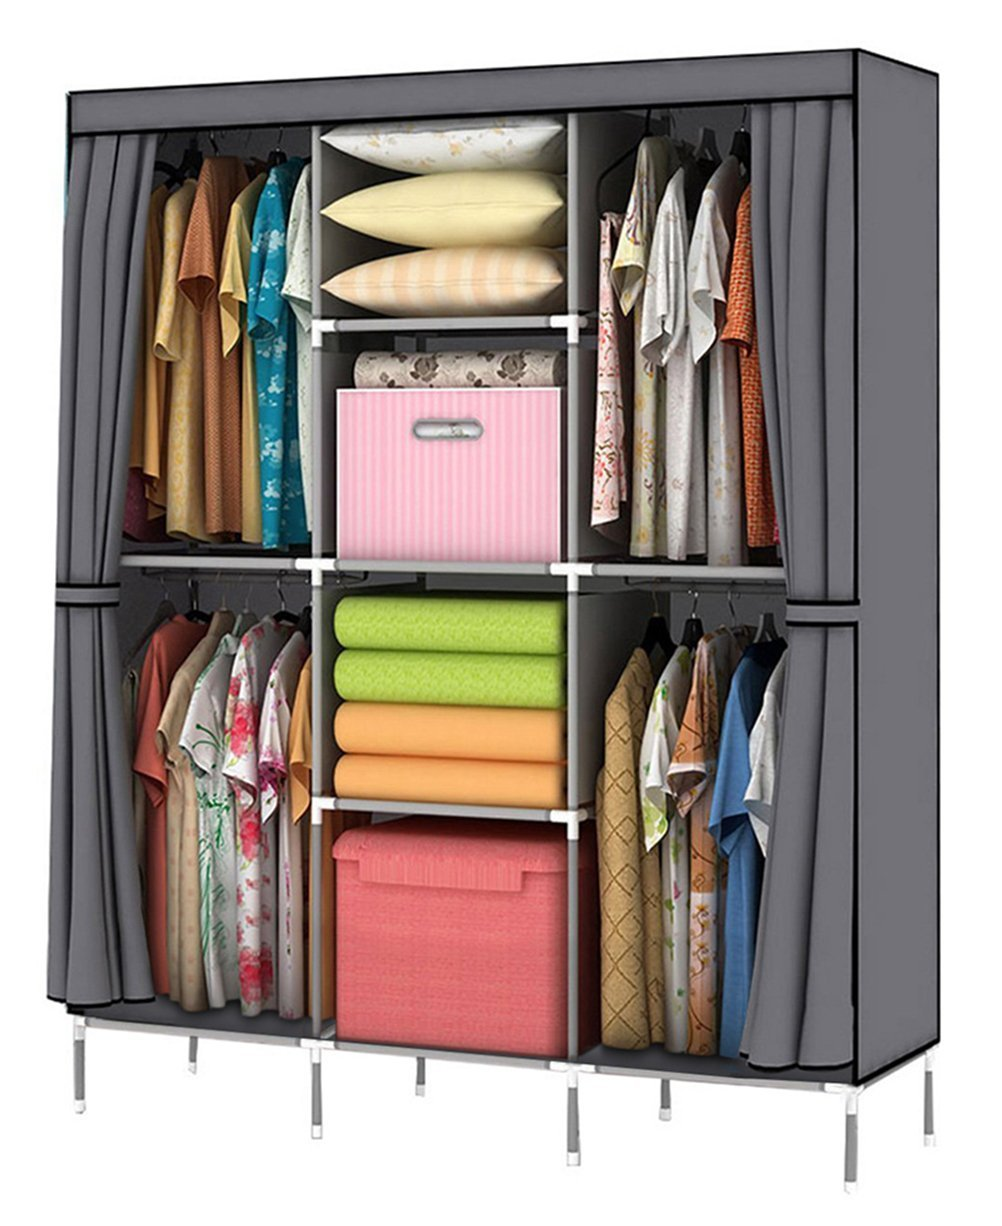 YOUUD Wardrobe Storage Clothes Closet